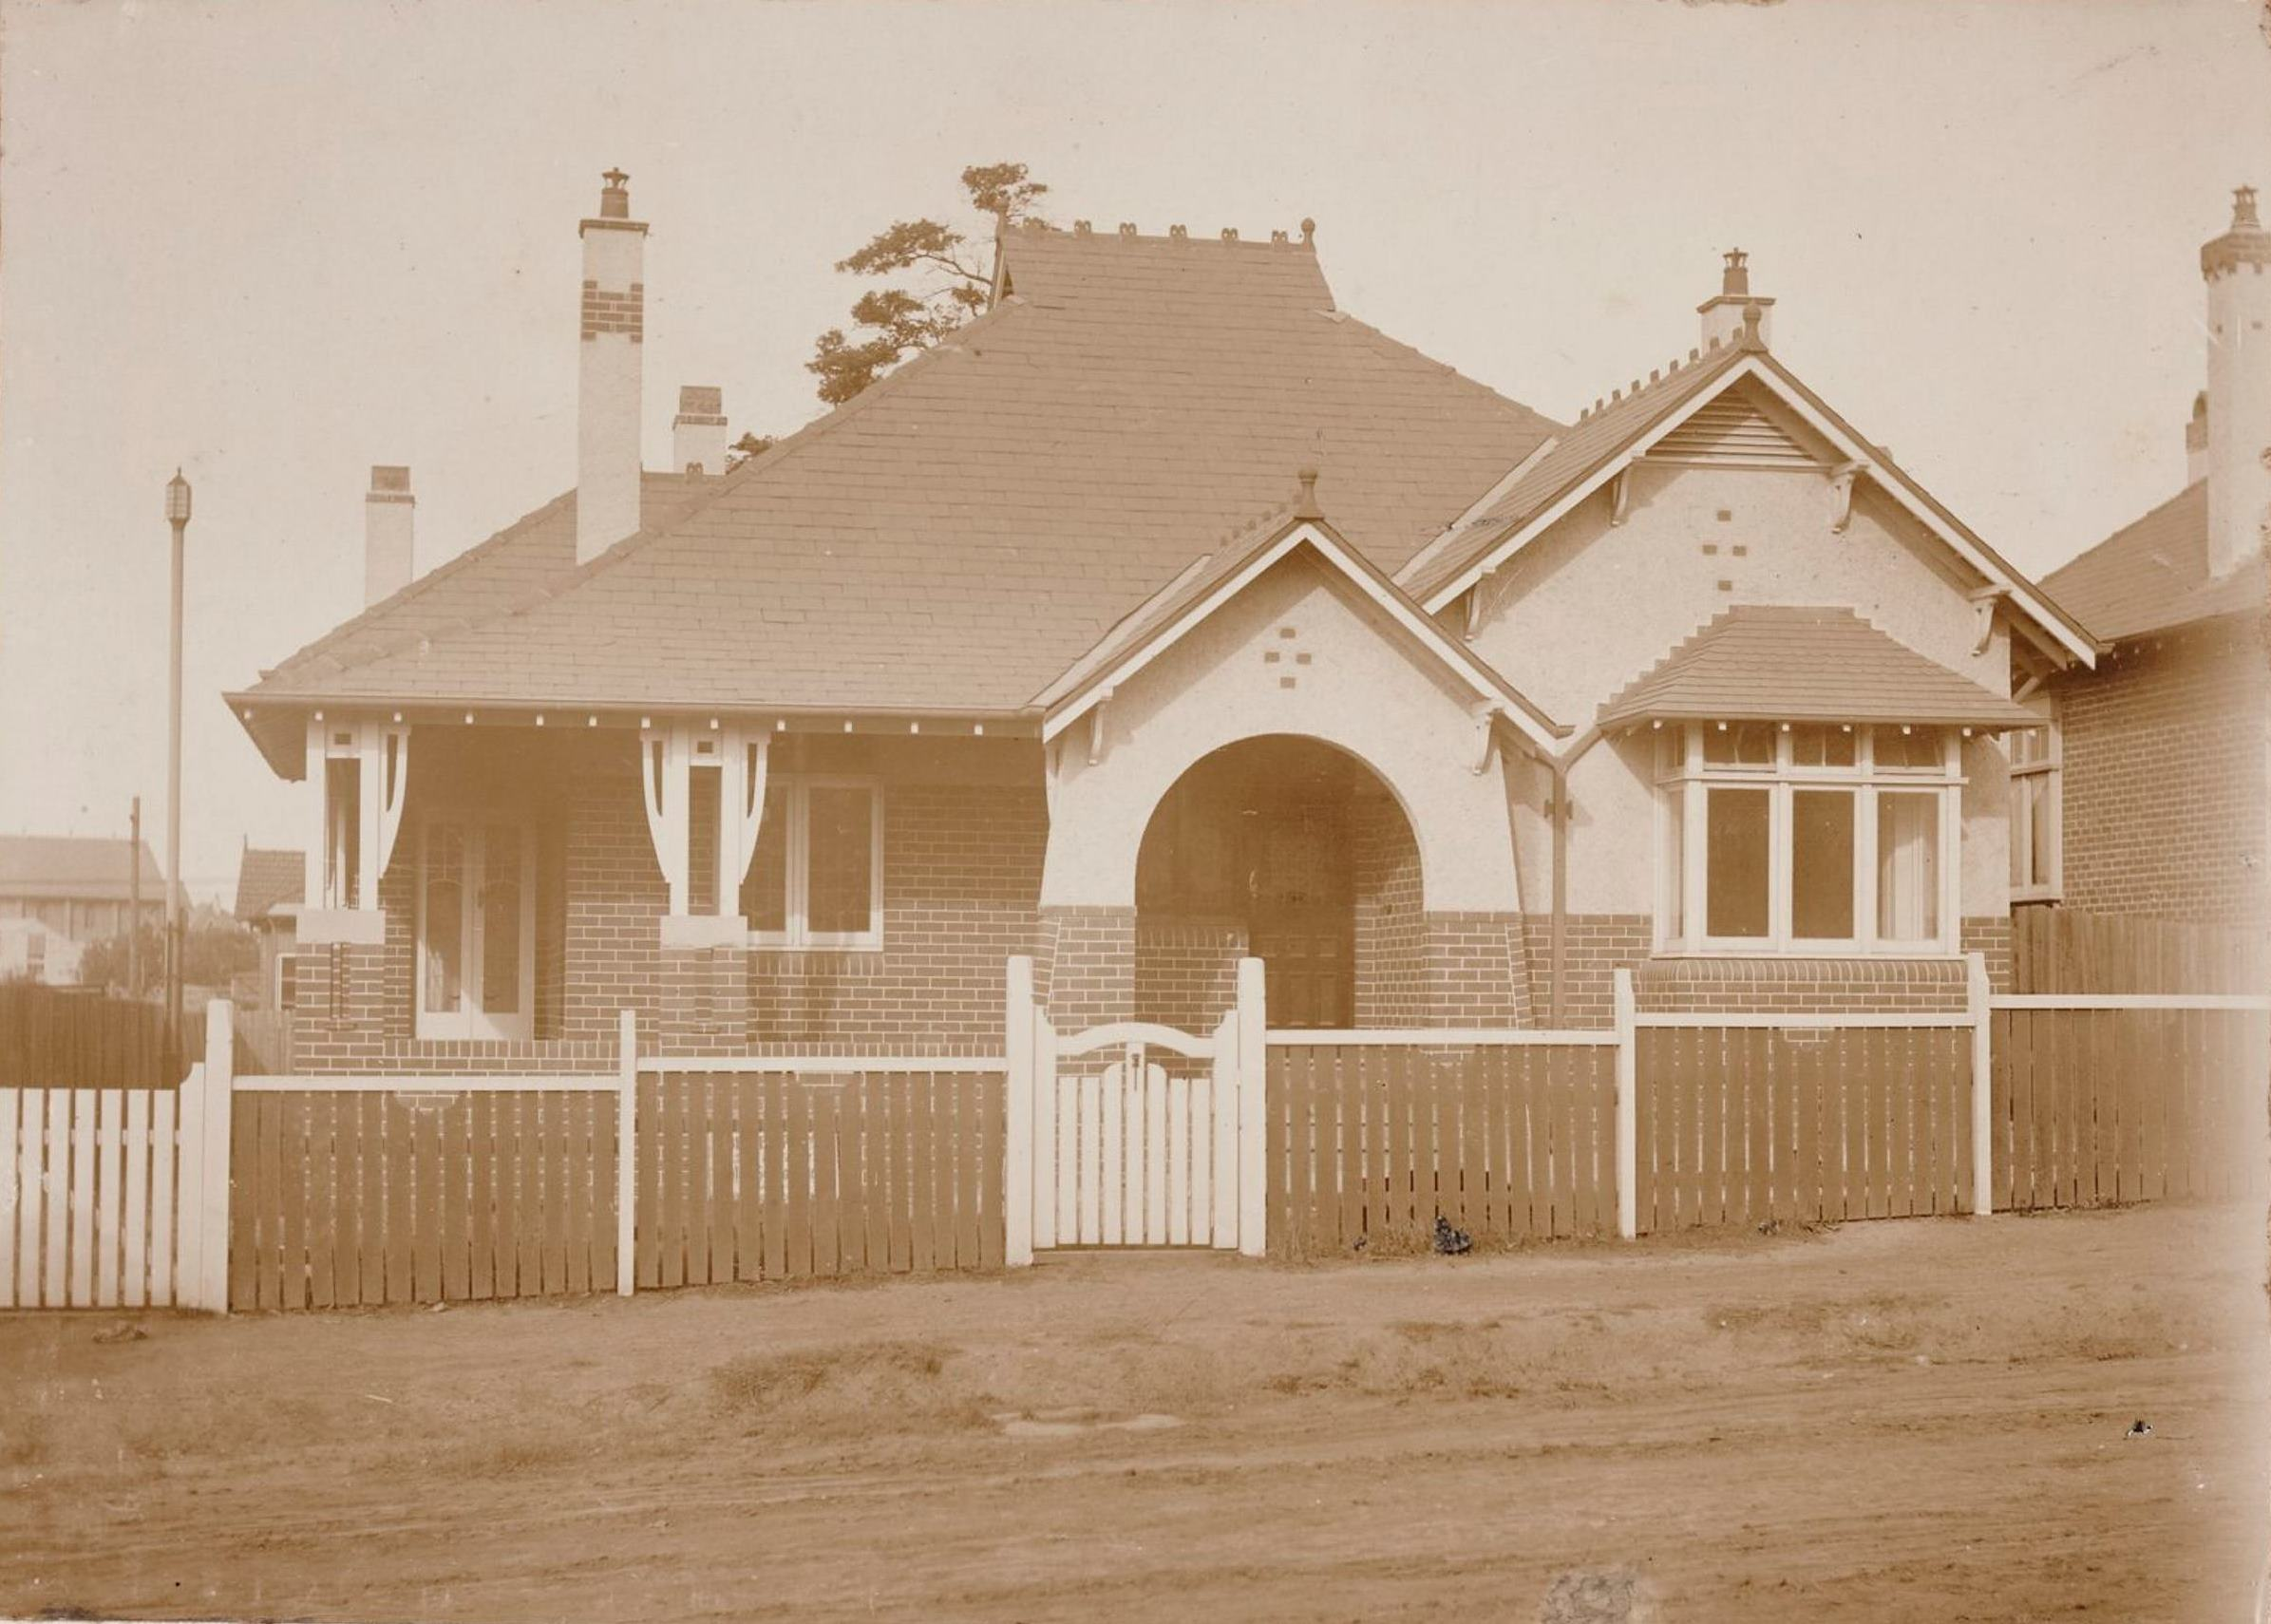 Hythe, 5 Winchcombe Avenue, Haberfield, N.S.W. around 1913 / photographer unknown